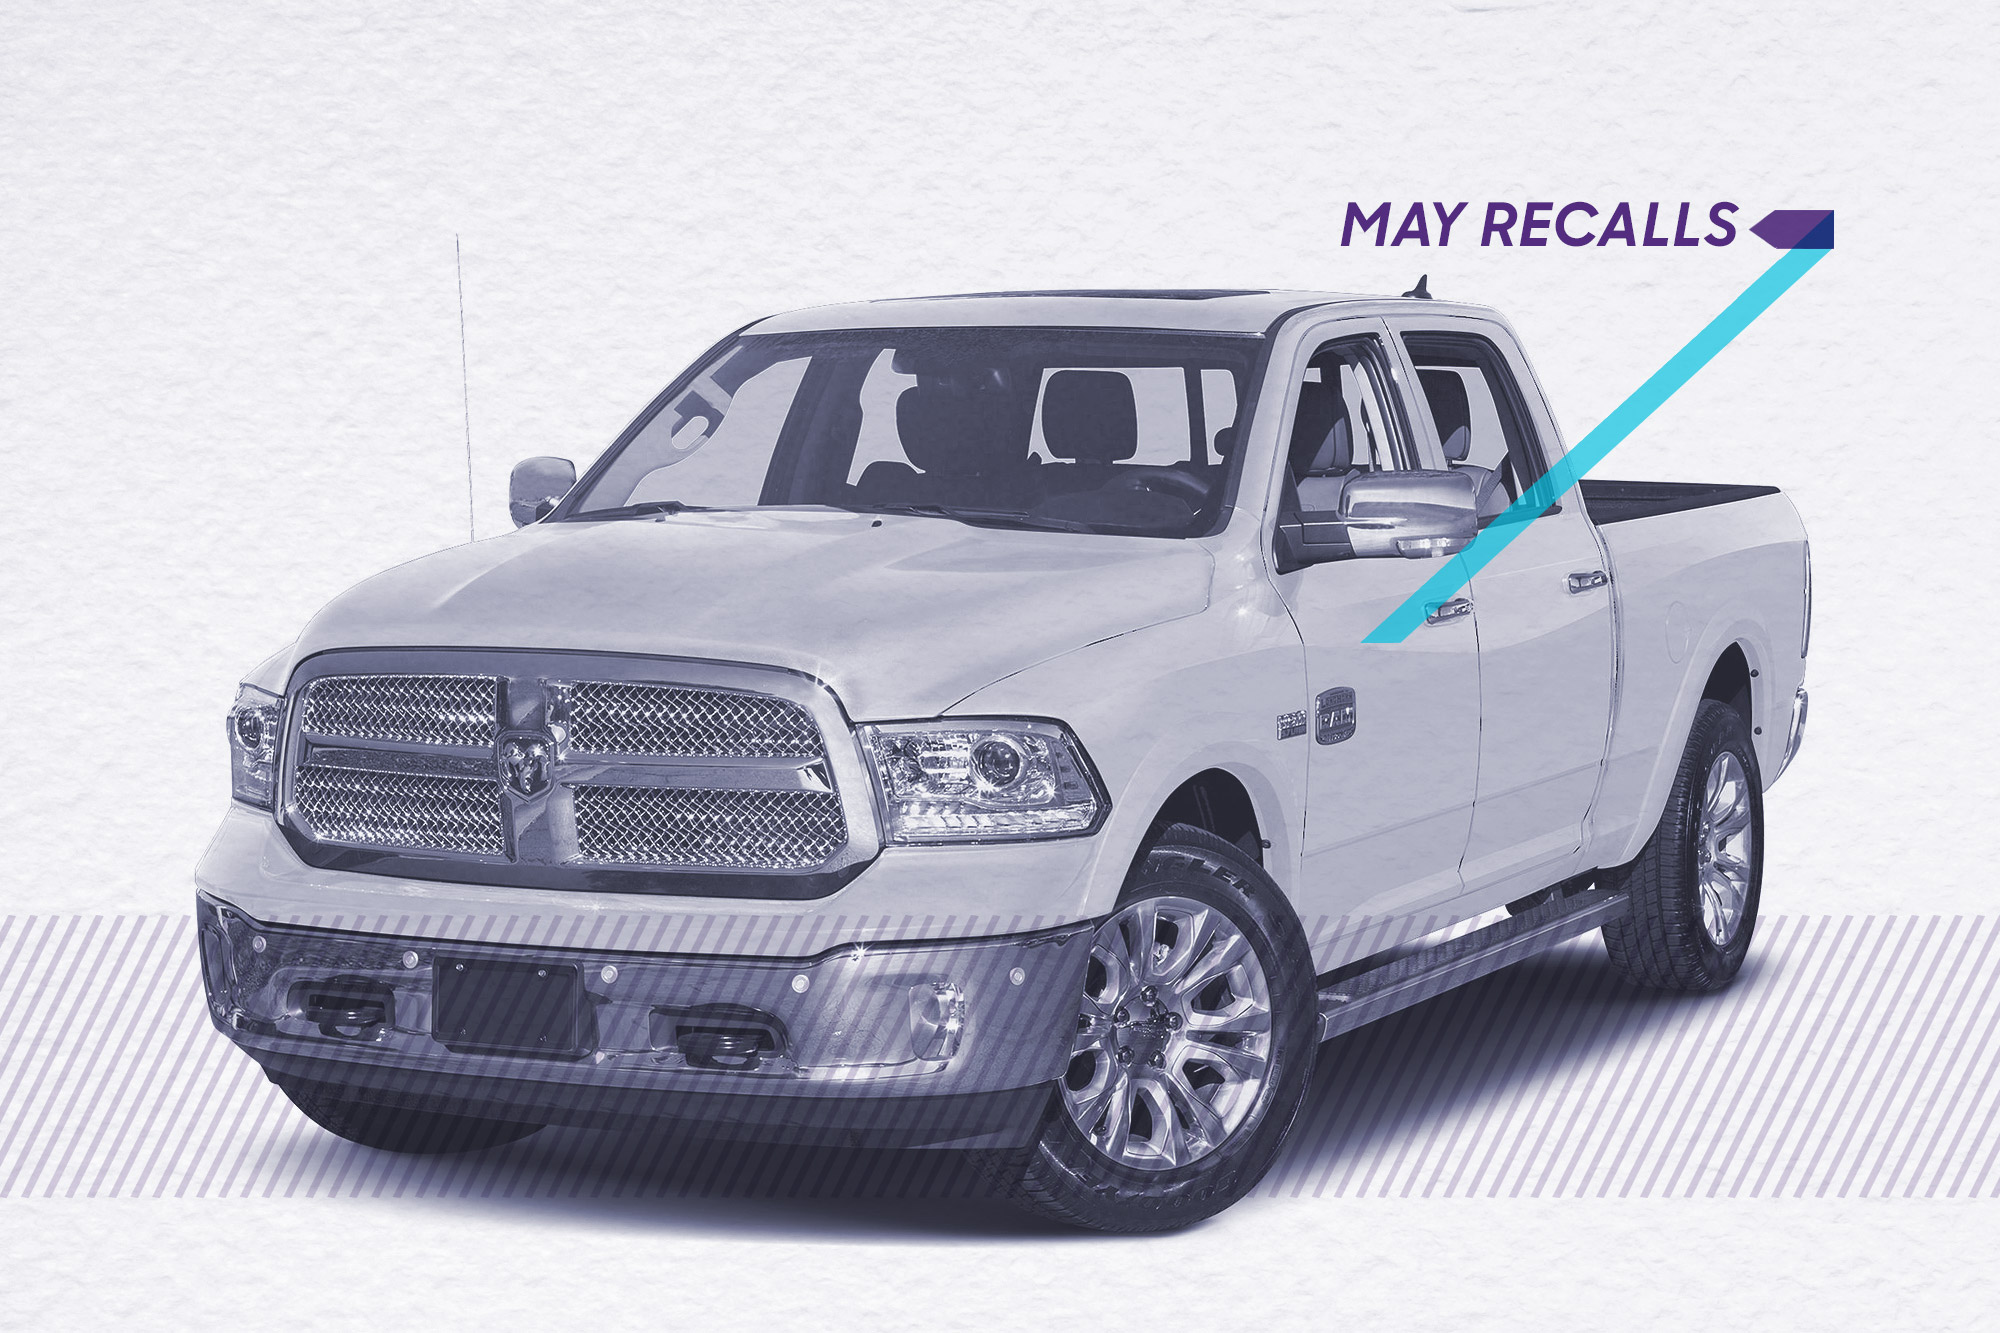 Recall Recap: The 5 Biggest Recalls in May 2019